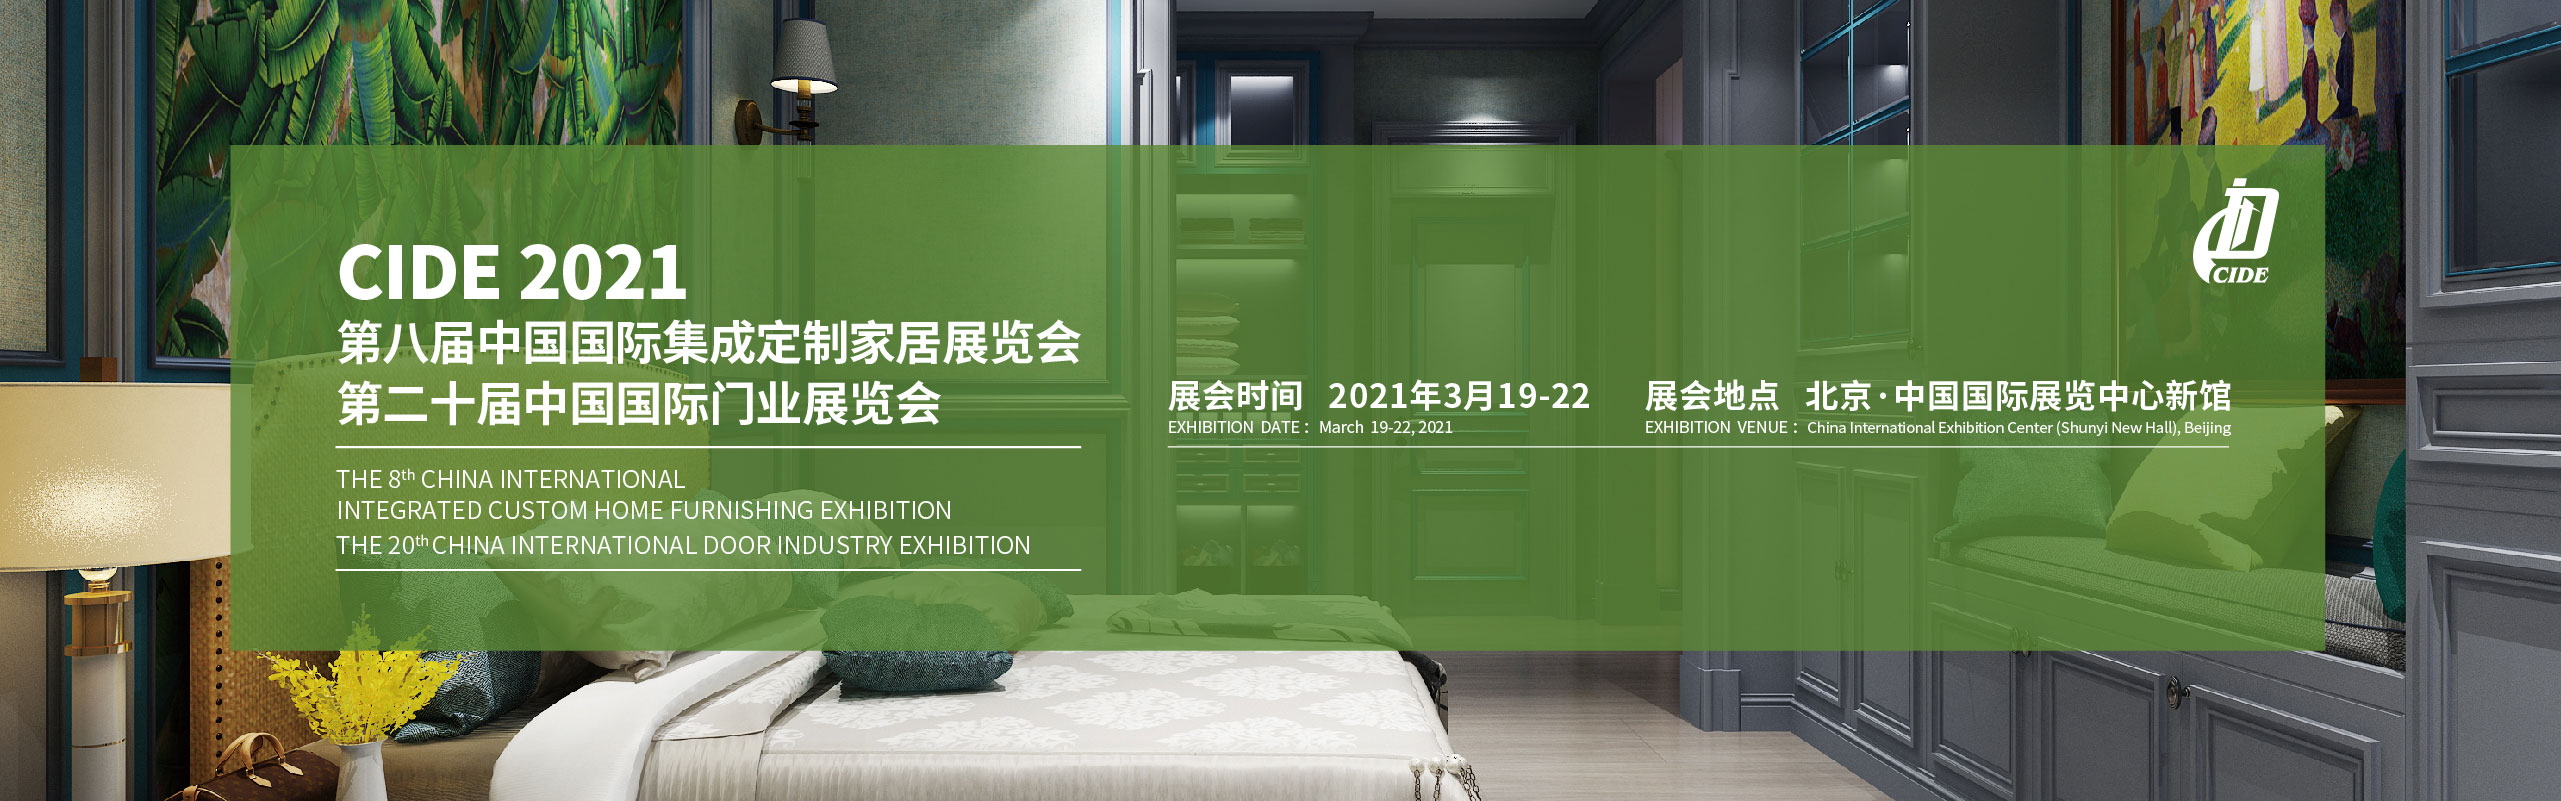 China International Integrated Customhome Furnishing Exhibition